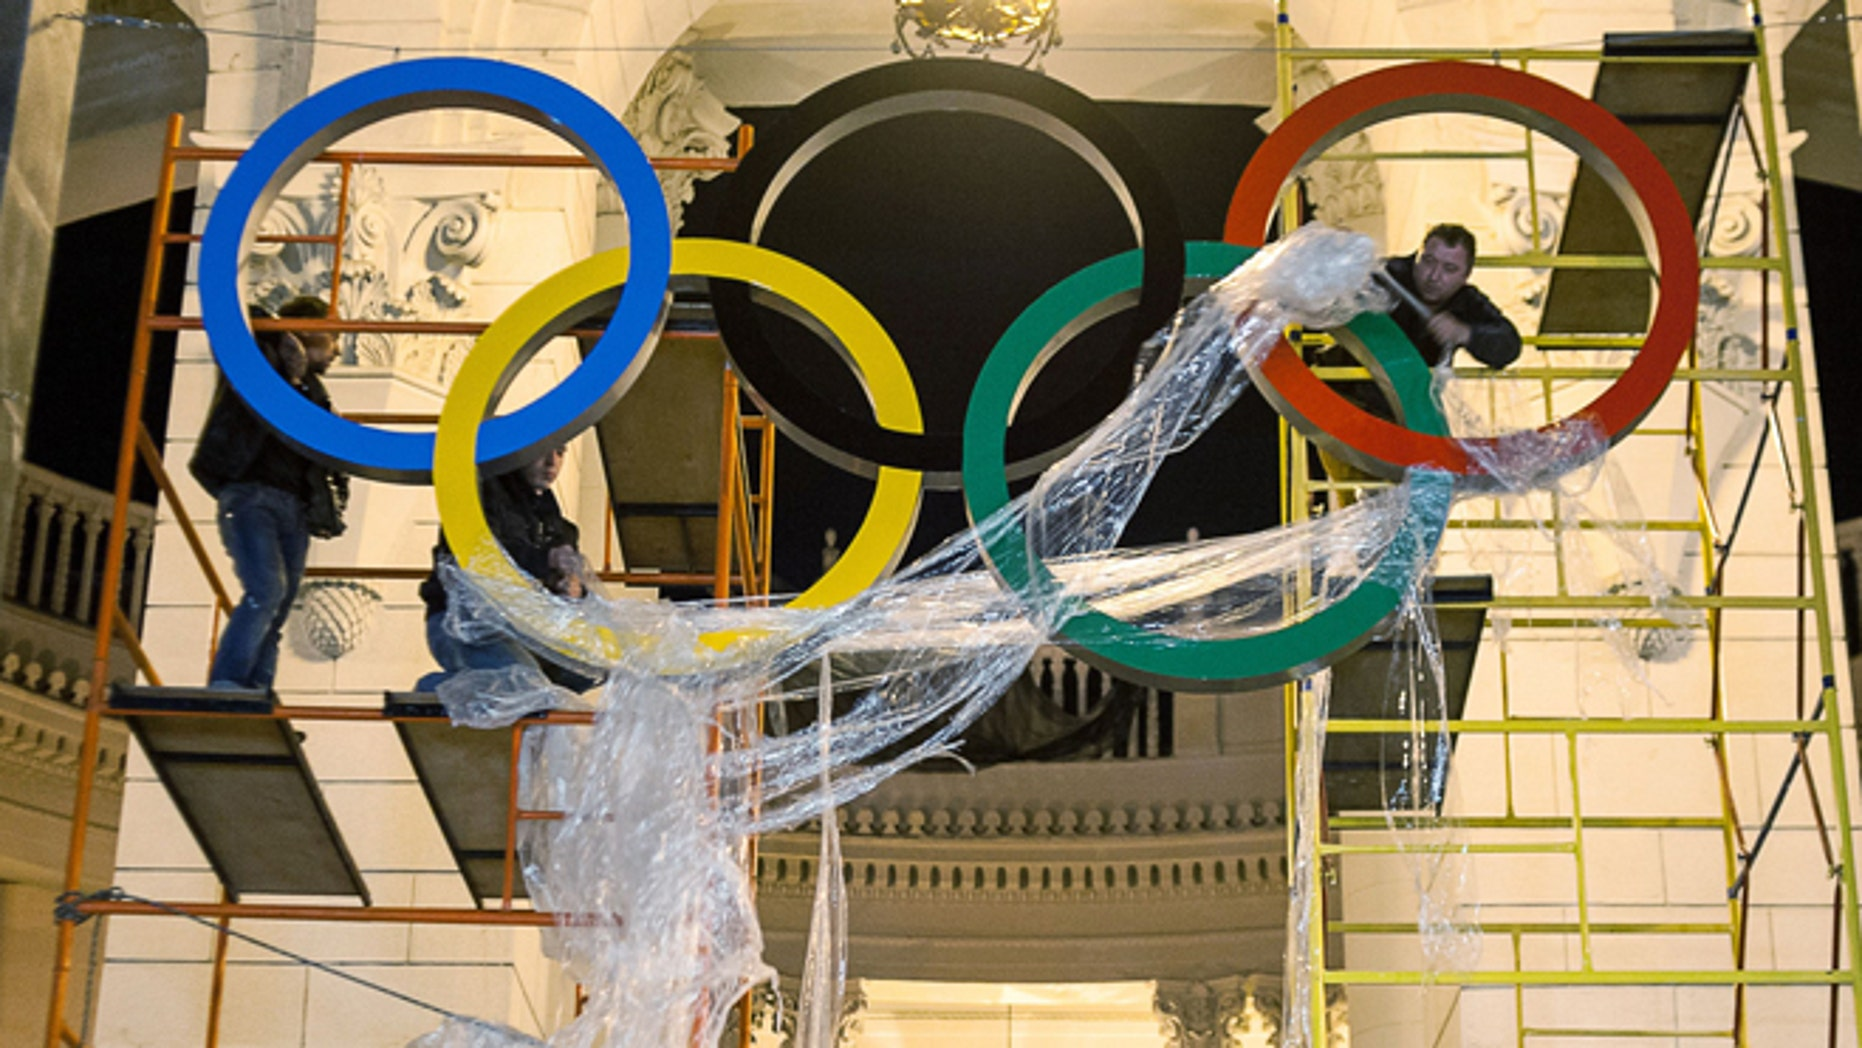 Oct. 28, 2013: Workers are fixing the Olympic emblem at an entrance to the railway station of Russia's Black Sea resort of Sochi, Russia.